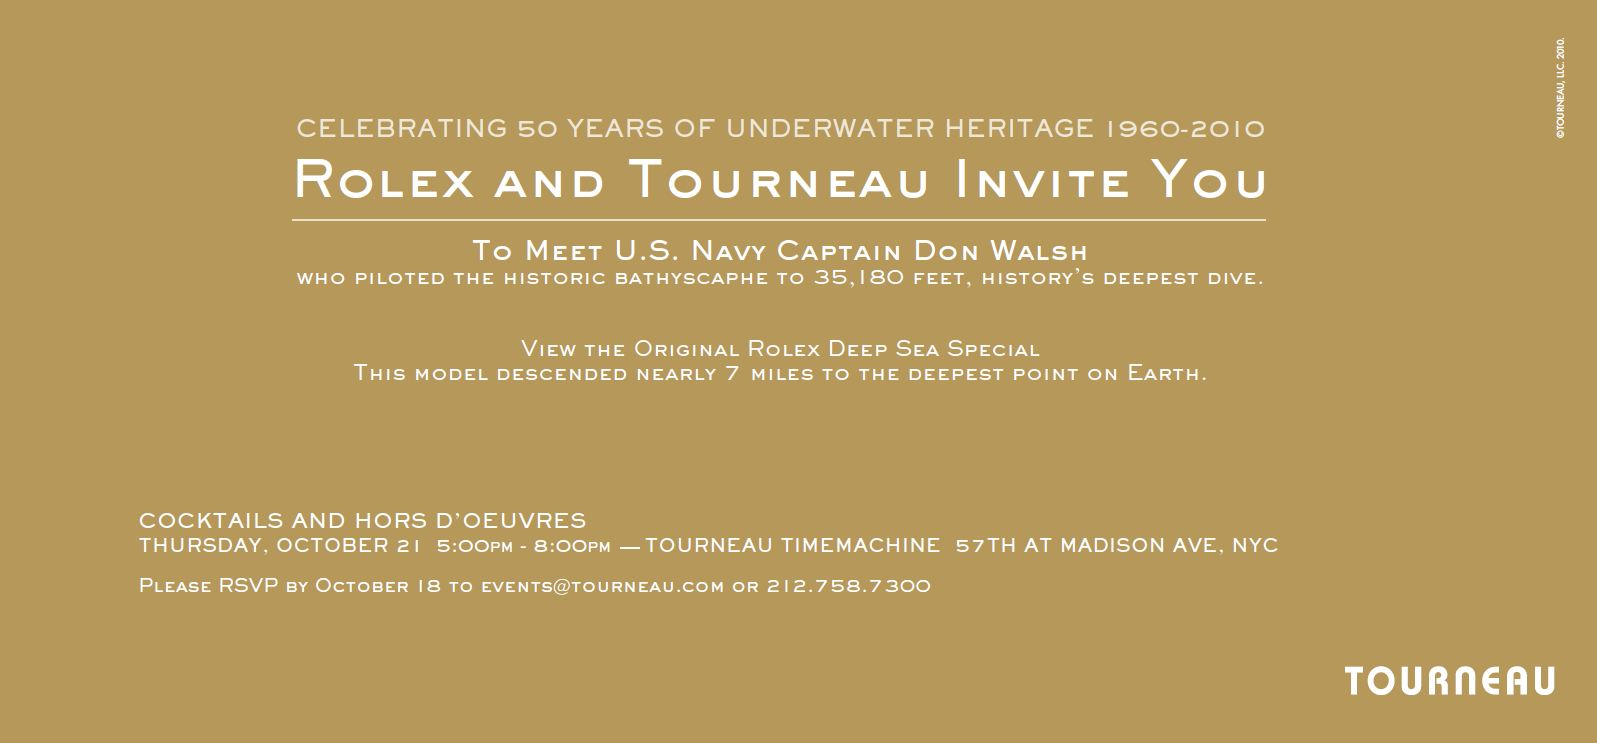 Rolex Deep Sea Watch 50th Anniversary Event With Tourneau In NYC